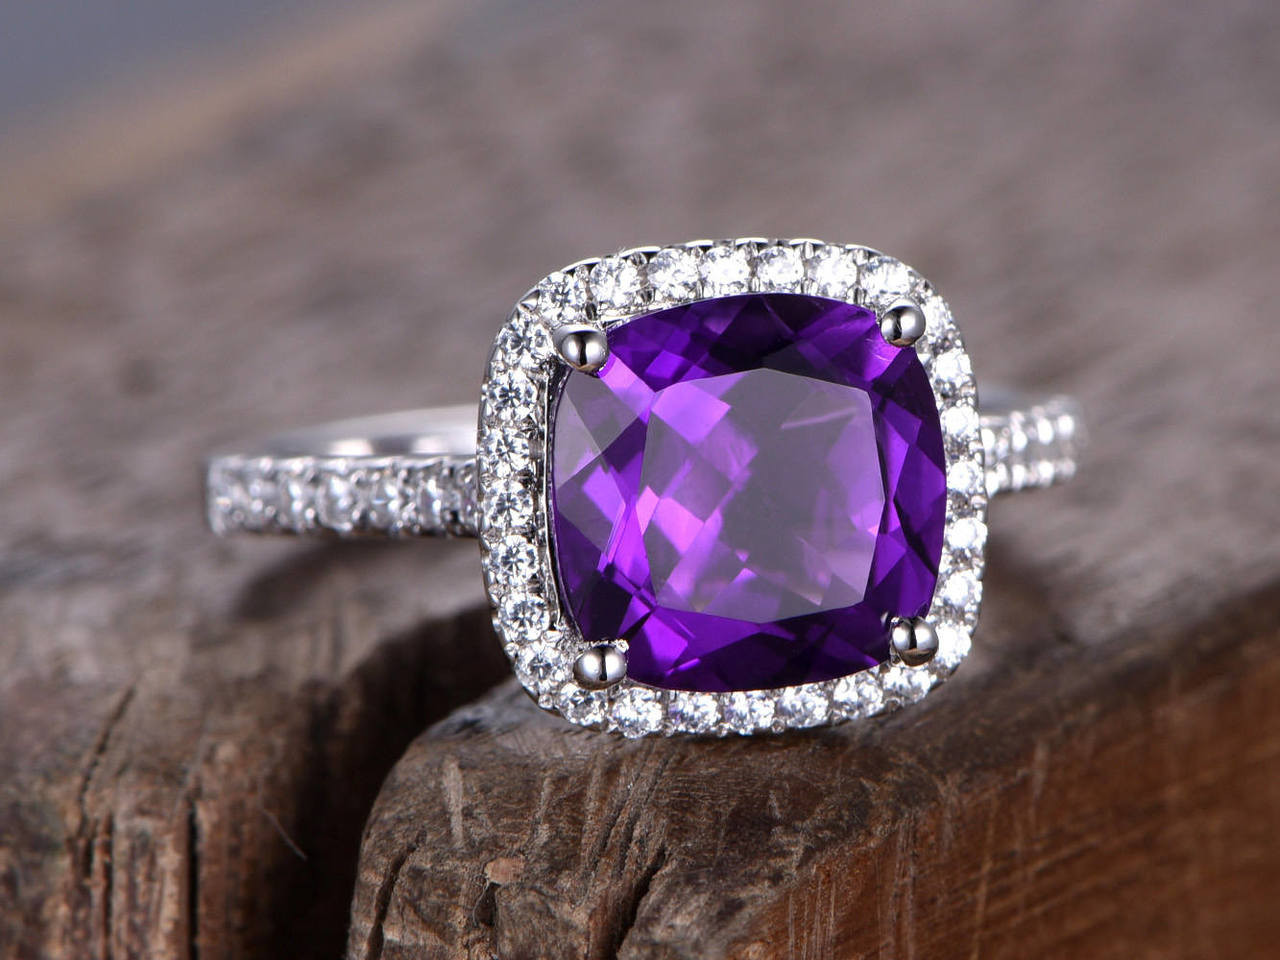 purple entrancing jewelry fascinating white at rings topaz diamond gold artistic price wg cushion violac engagement in nl reasonable cut with ring